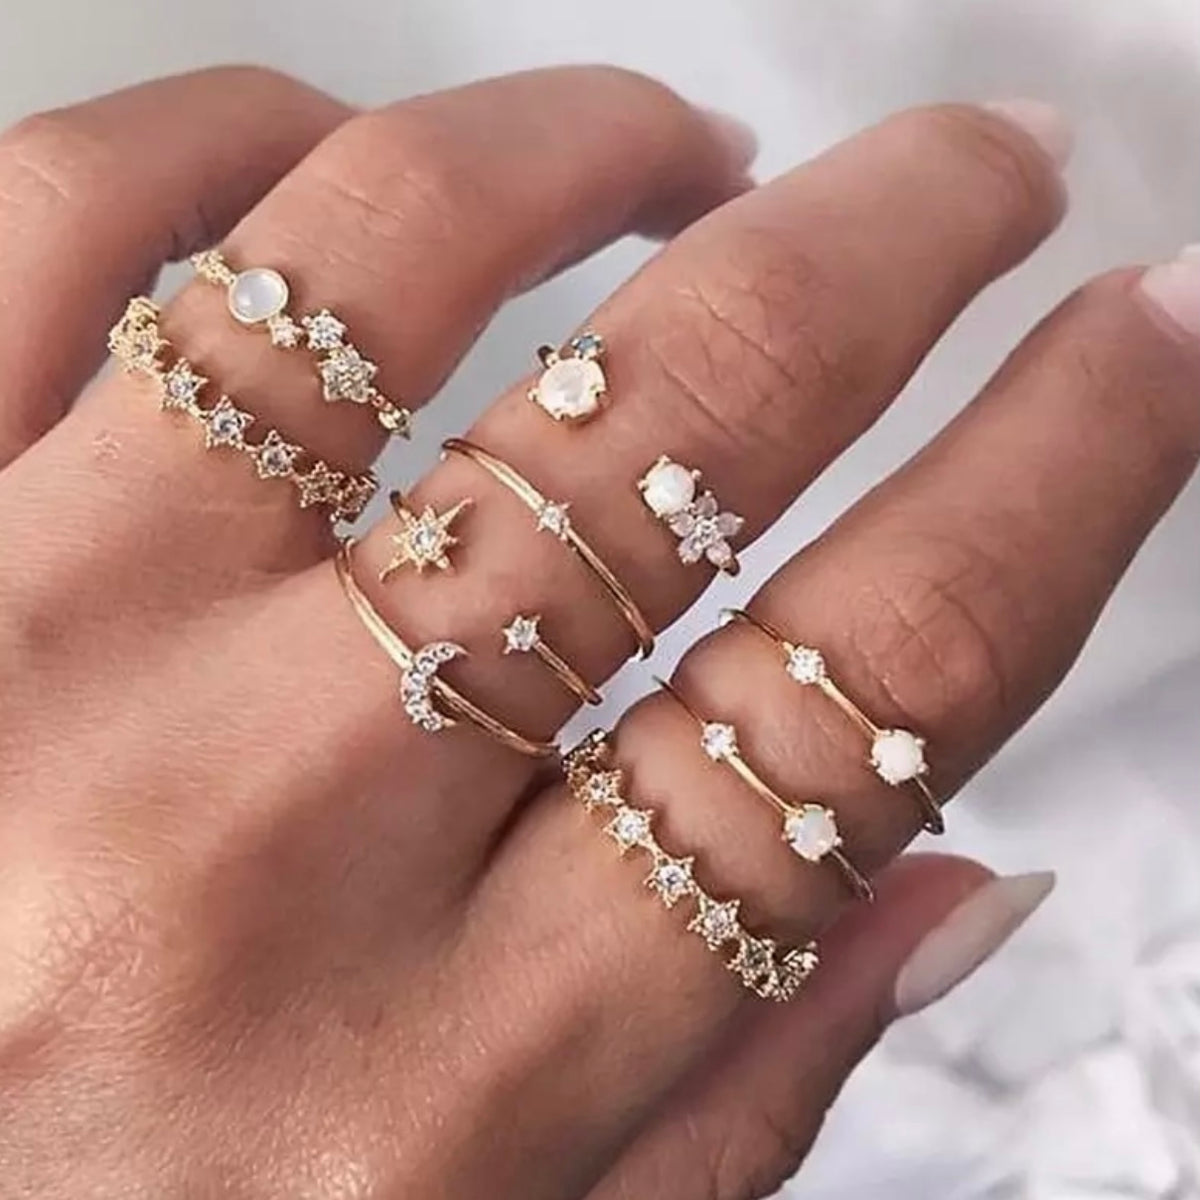 9 Piece Dainty Ring Set